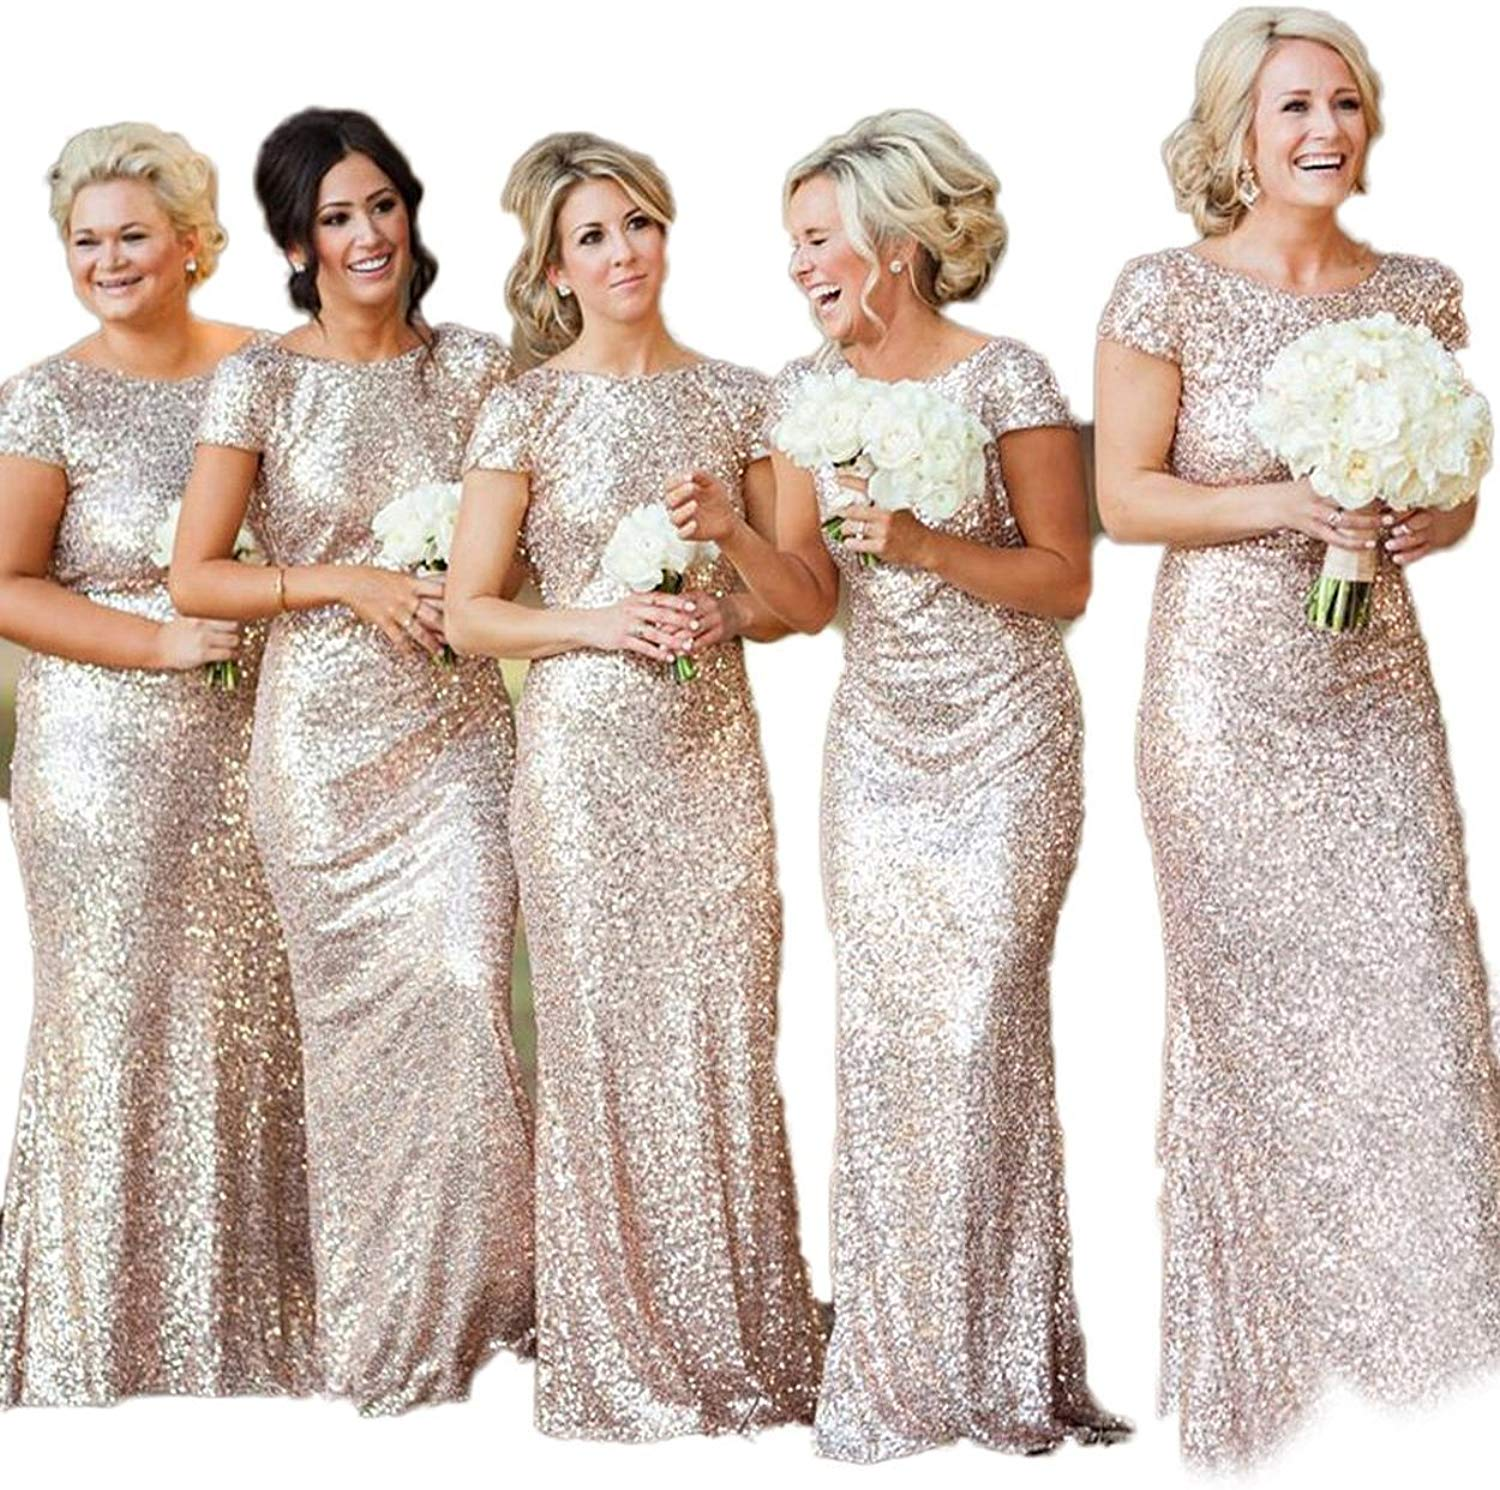 maid of honor dresses for weddings bridesmaid party dresses for women long prom dress graduation dresses back of bandage a line Bling Sequins High Neck Long Bridesmaid Dresses Sheath Prom Dresses Maid Of Honor Dresses Formal Gowns Party Dress